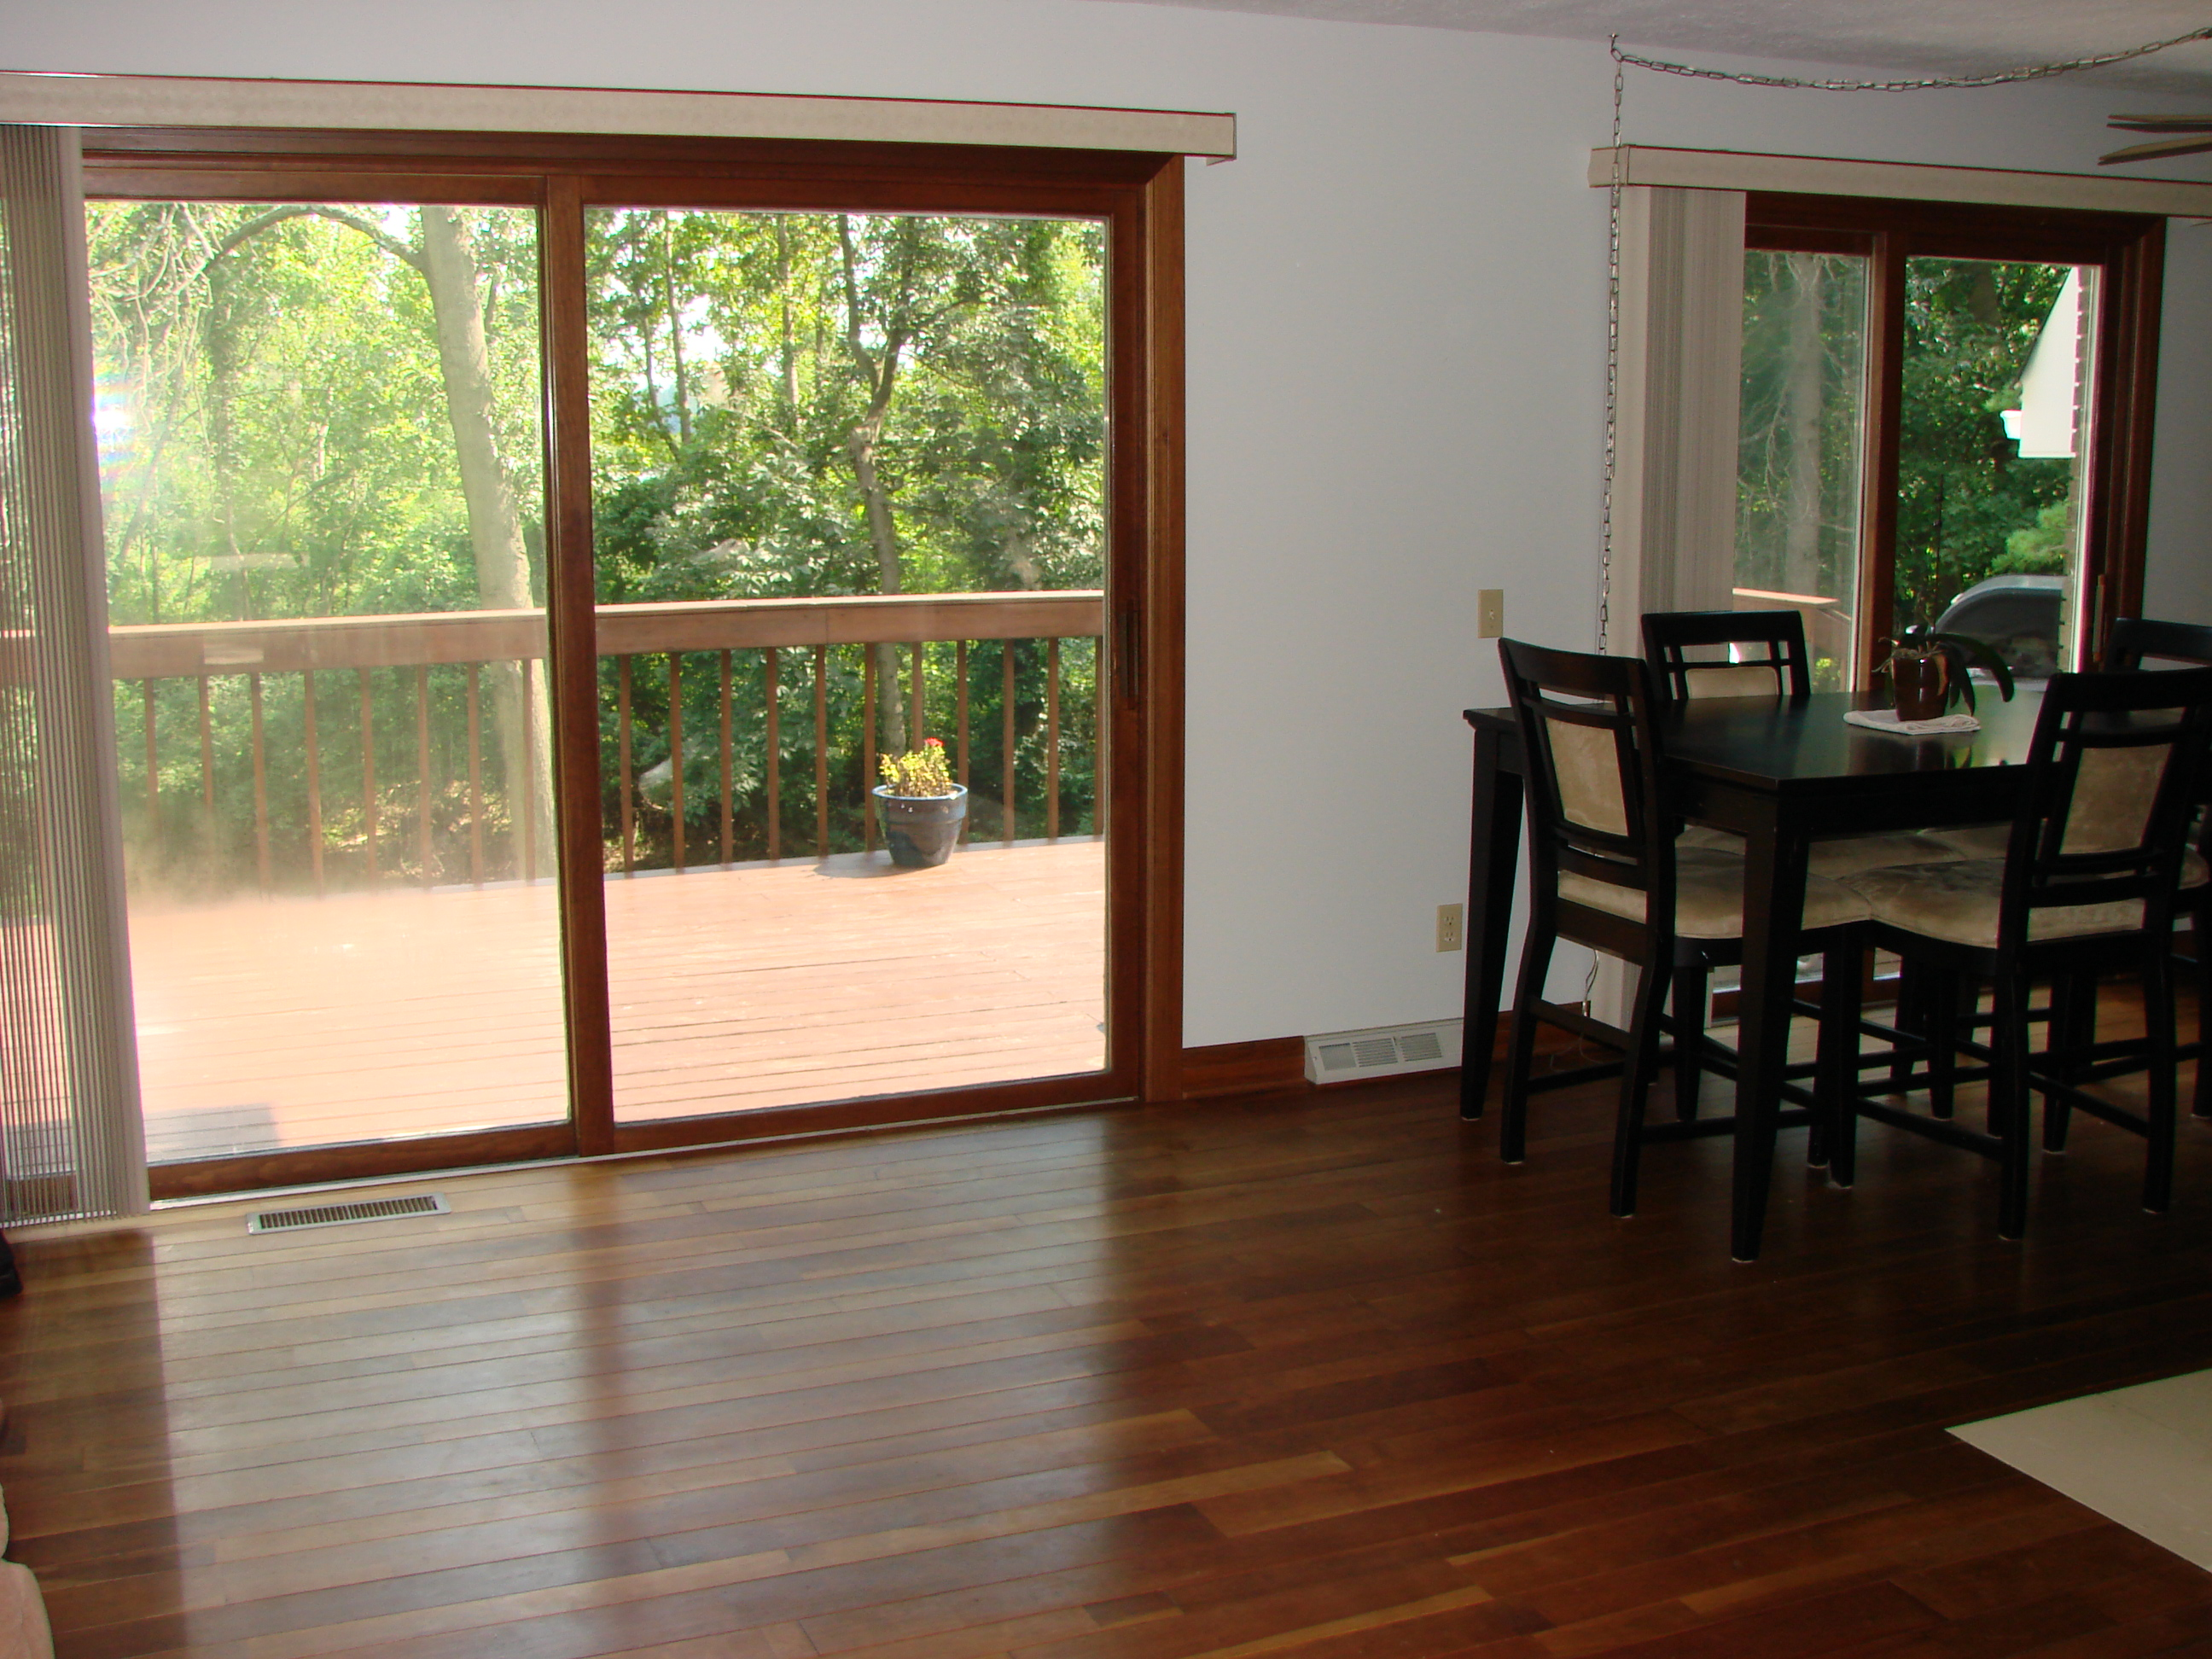 Interior remodel of dining room